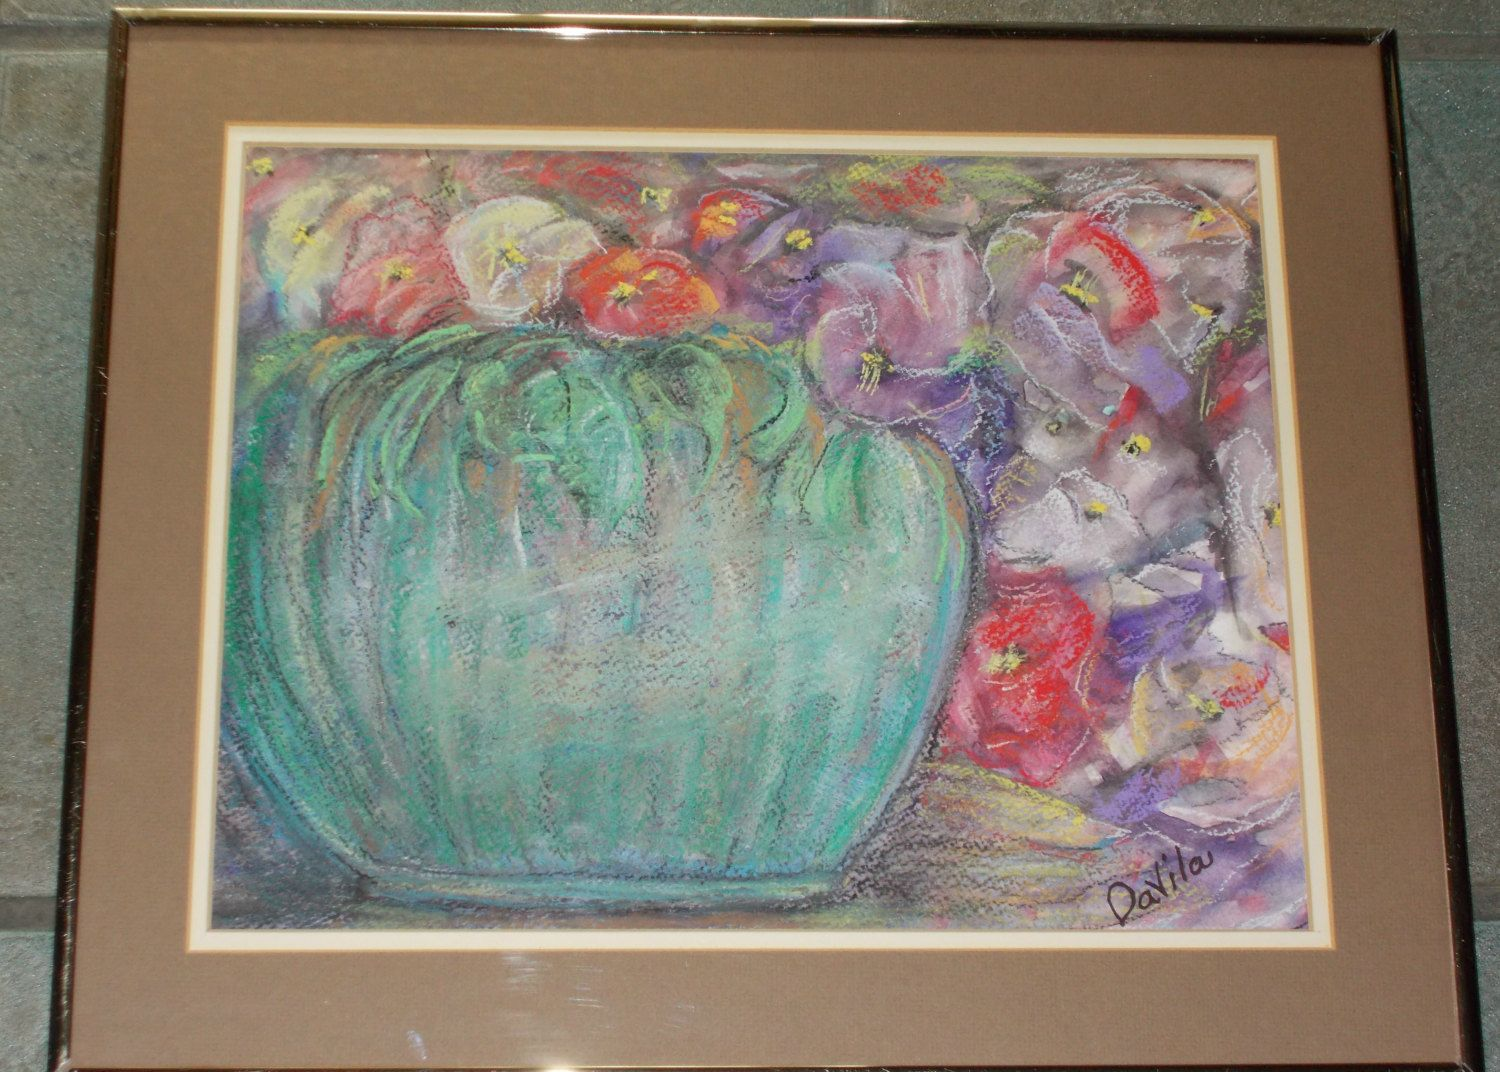 Origina painting large aqual vase with flowers painted in watercolor ...